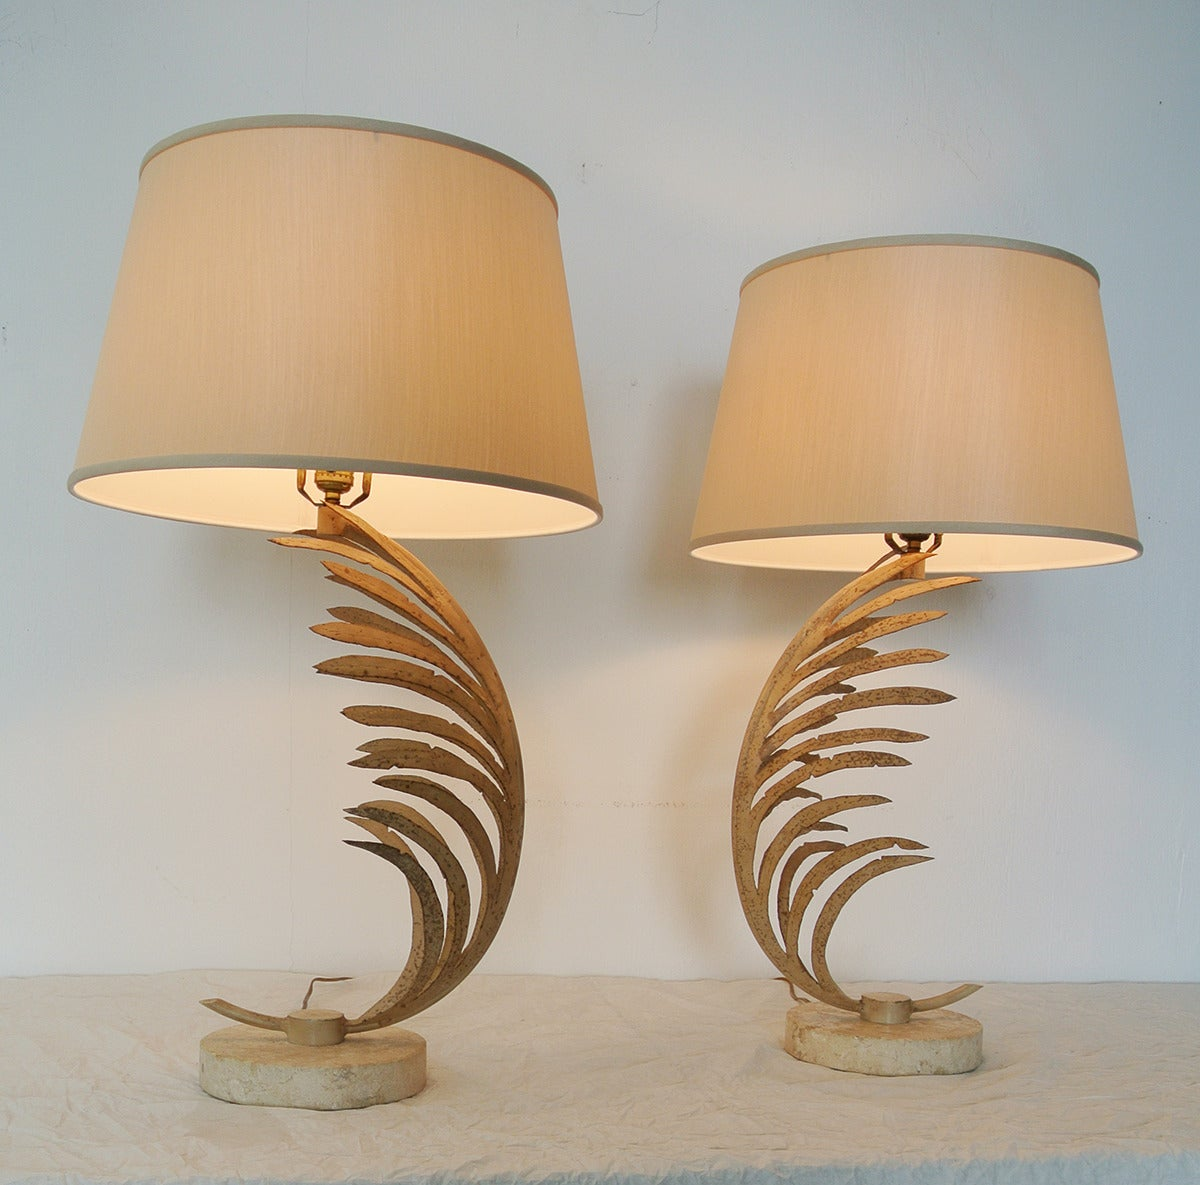 20th Century Michael Taylor Palm Frond Table Lamps, with travertine marble bases,  circa 1985 For Sale